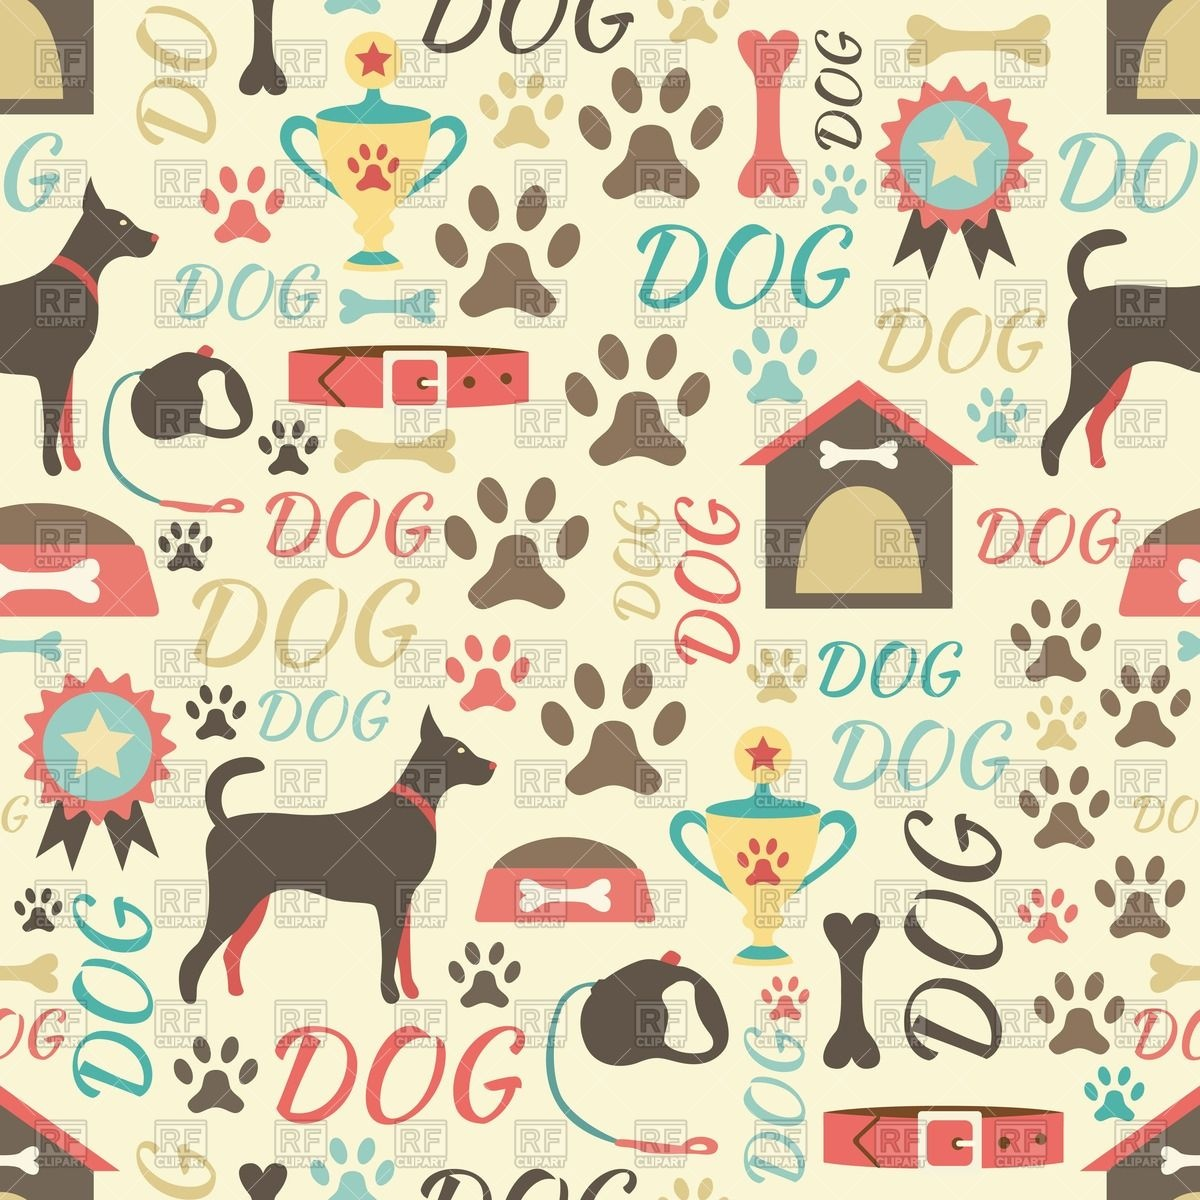 retro style background with dog doghouse dog collars paw prints 1200x1200